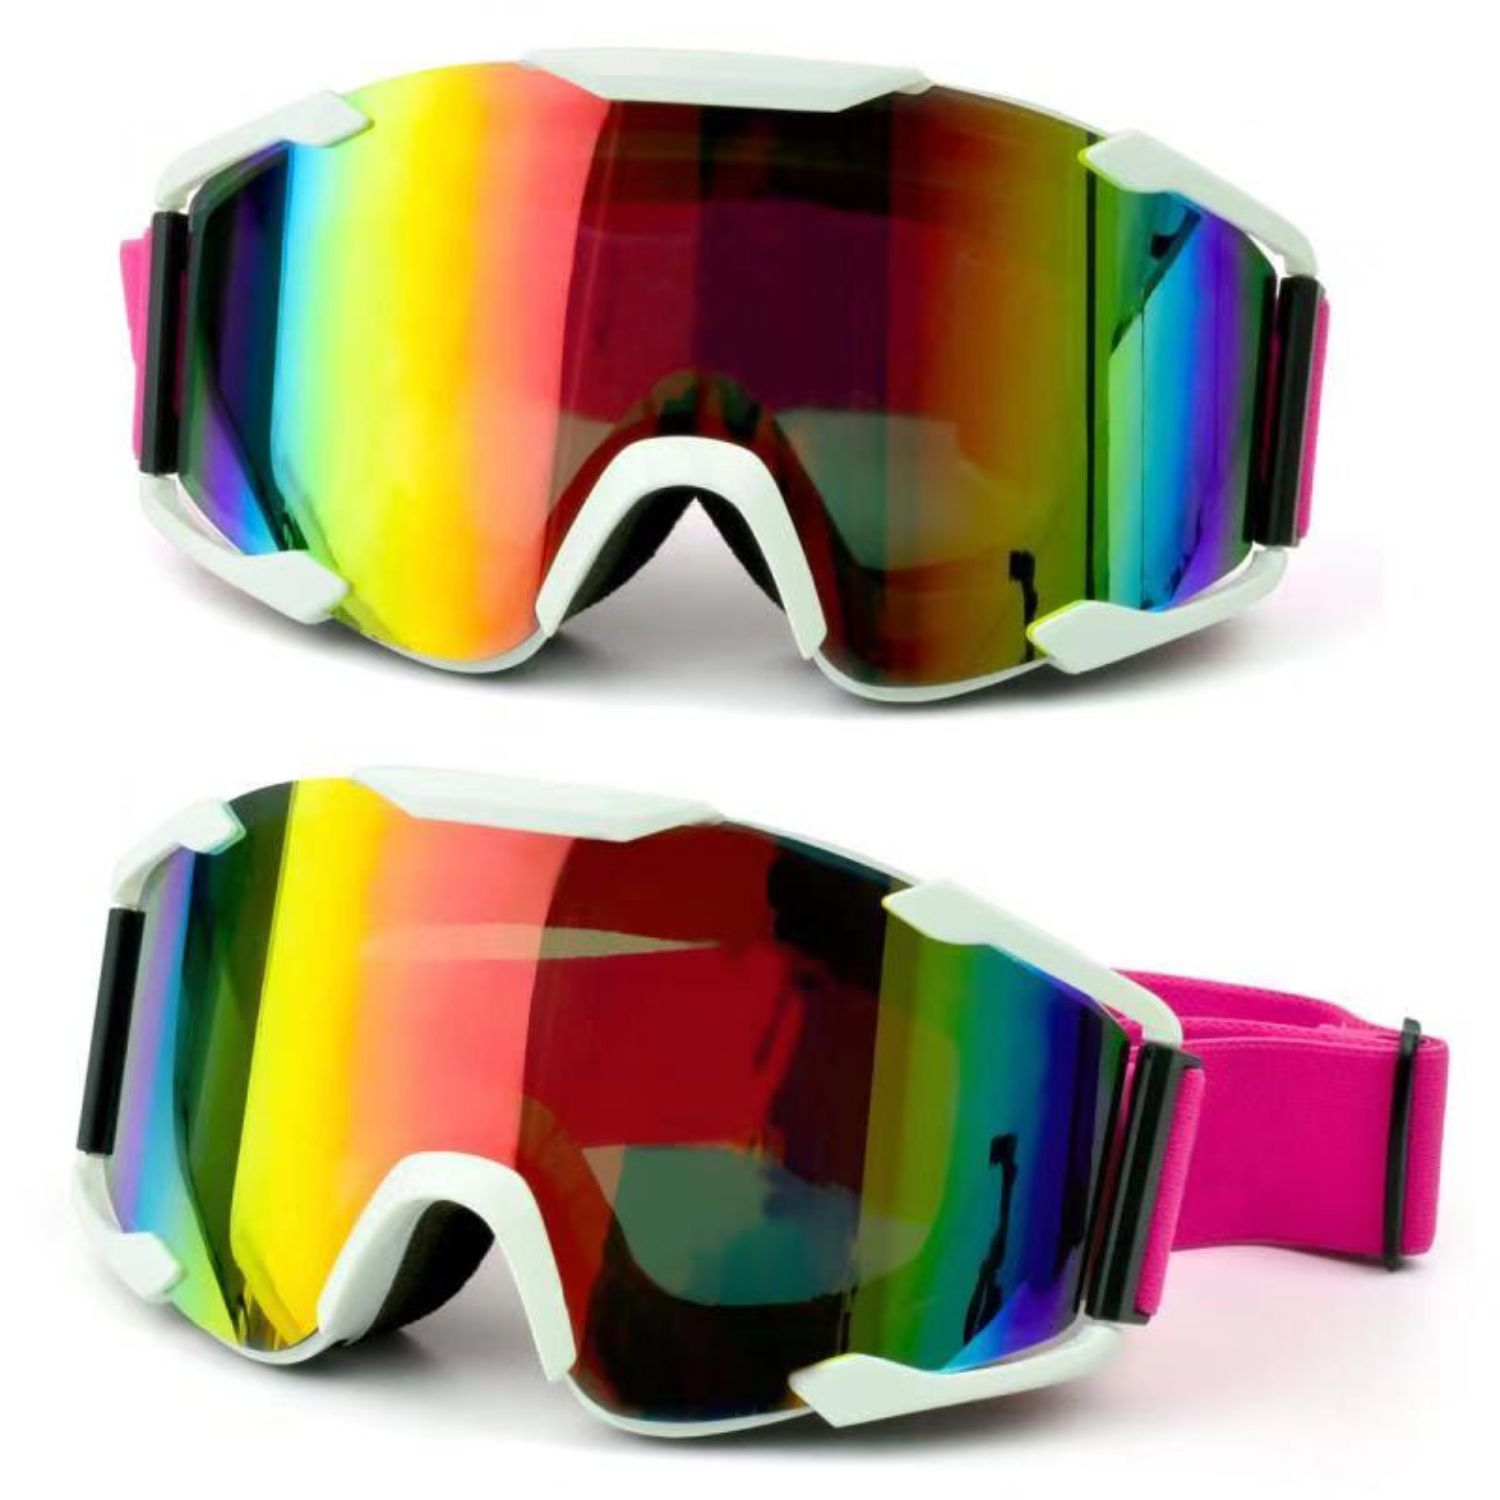 SG05 - Ski Snowboard Goggles for Men and Women with UV Protection